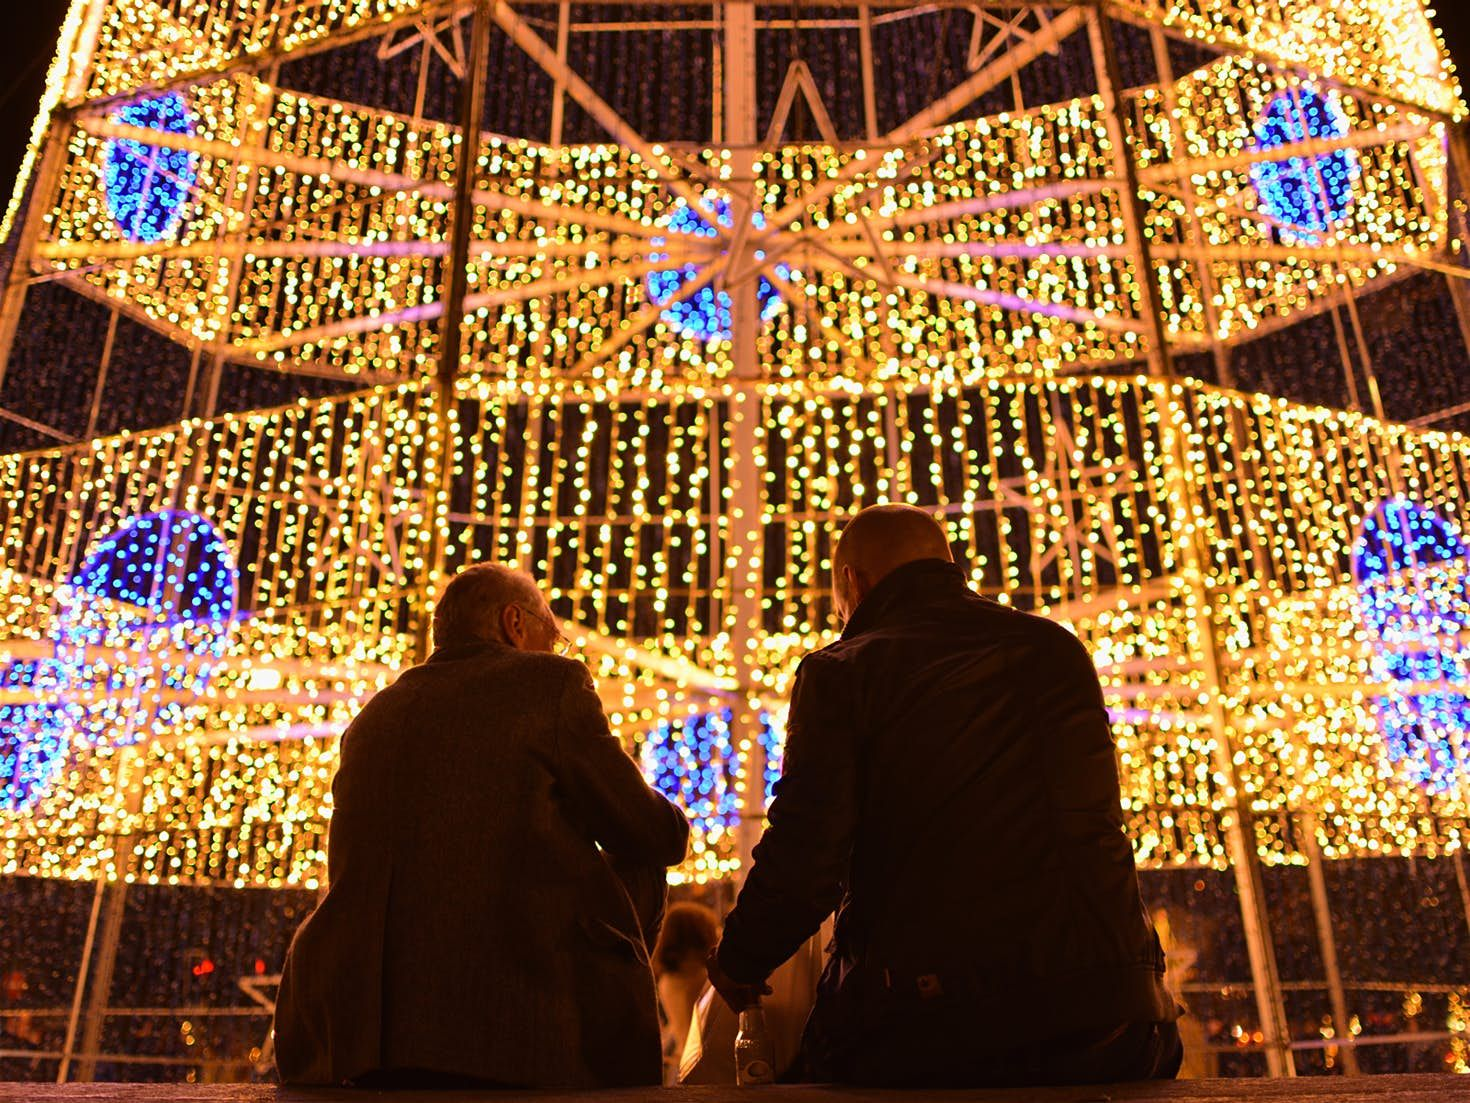 Two men sit in front of a Christmas tree made of lights in Porto, Portugal